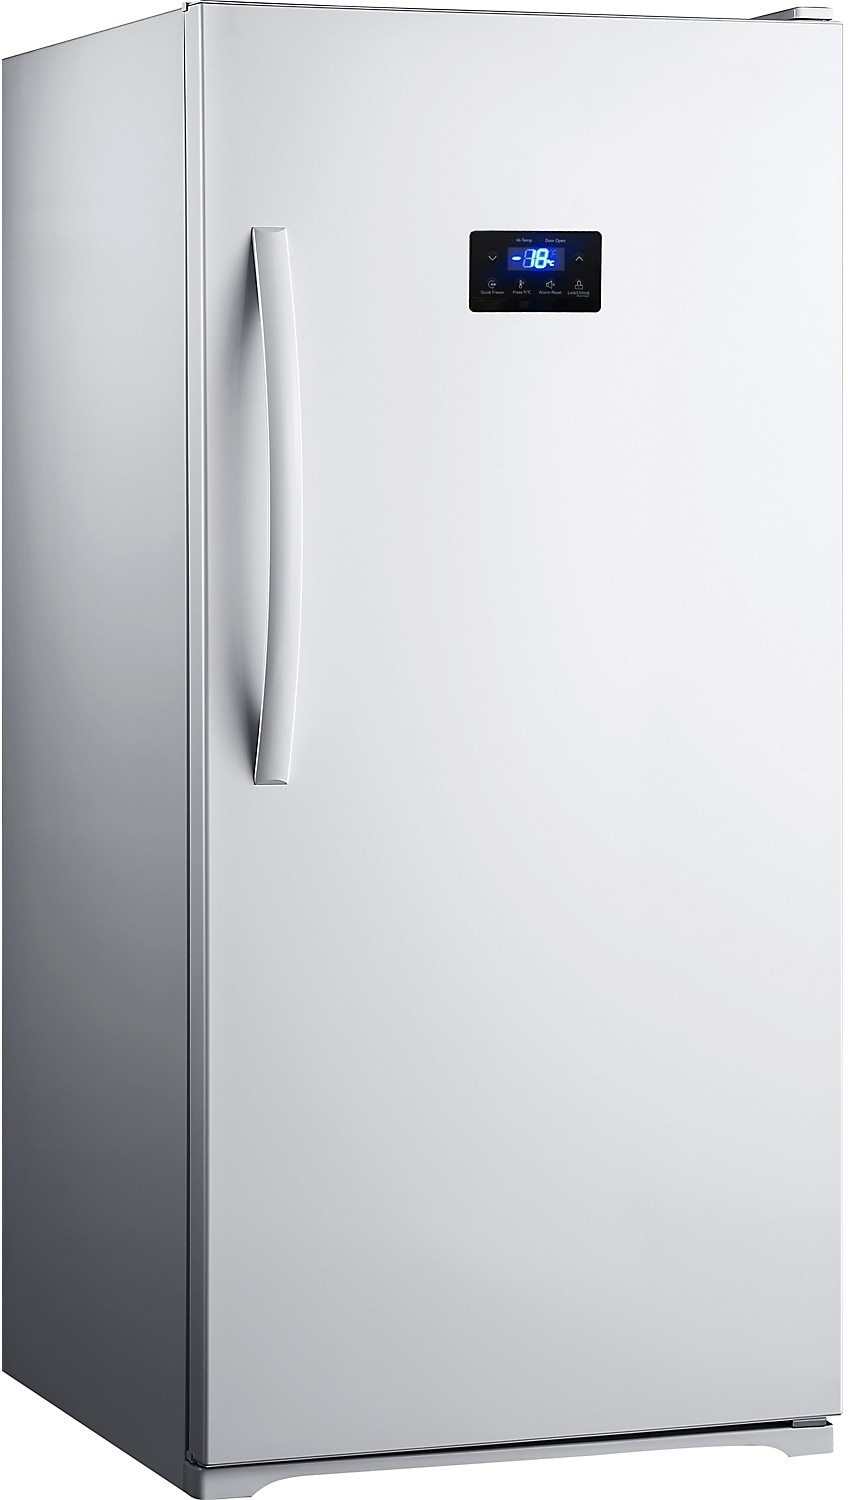 Midea® 13.8 Cu. Ft. No-Frost Upright Freezer – White